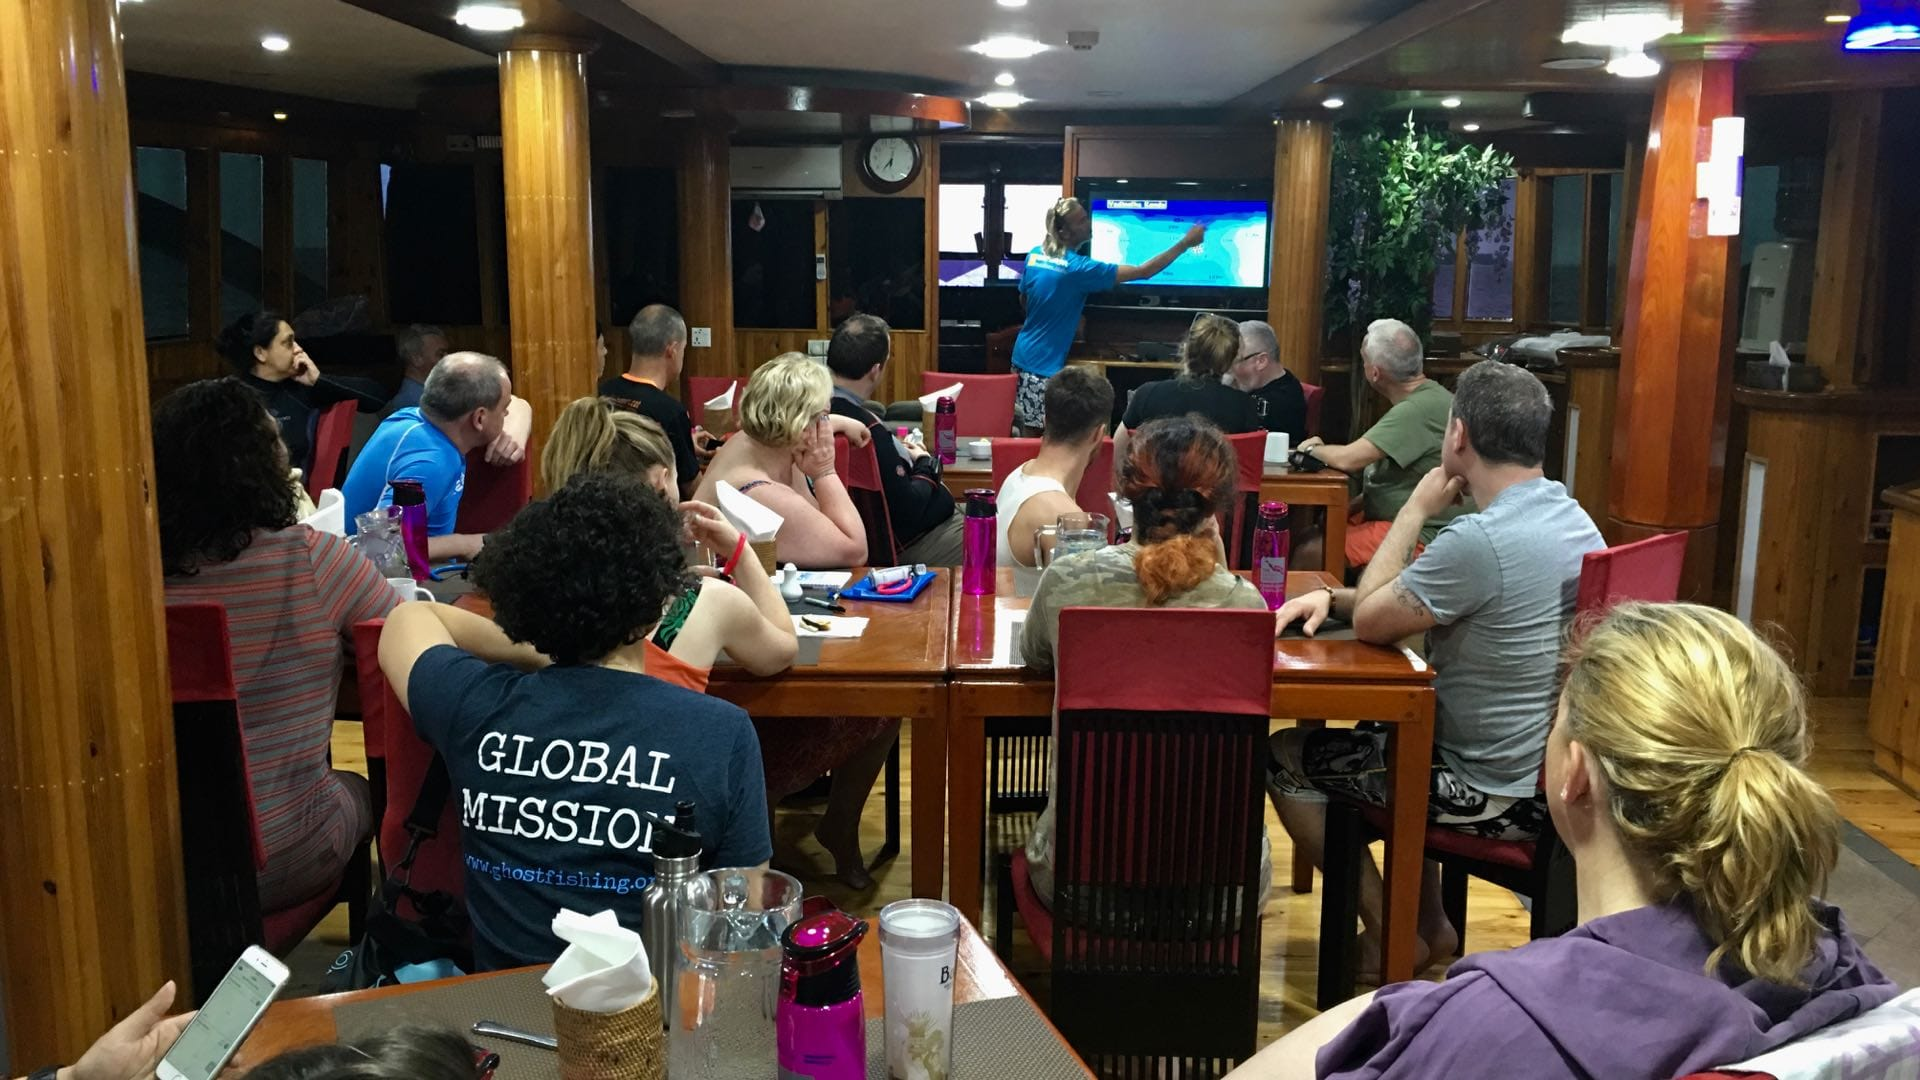 Divemood Emperor Orion Uw Briefing